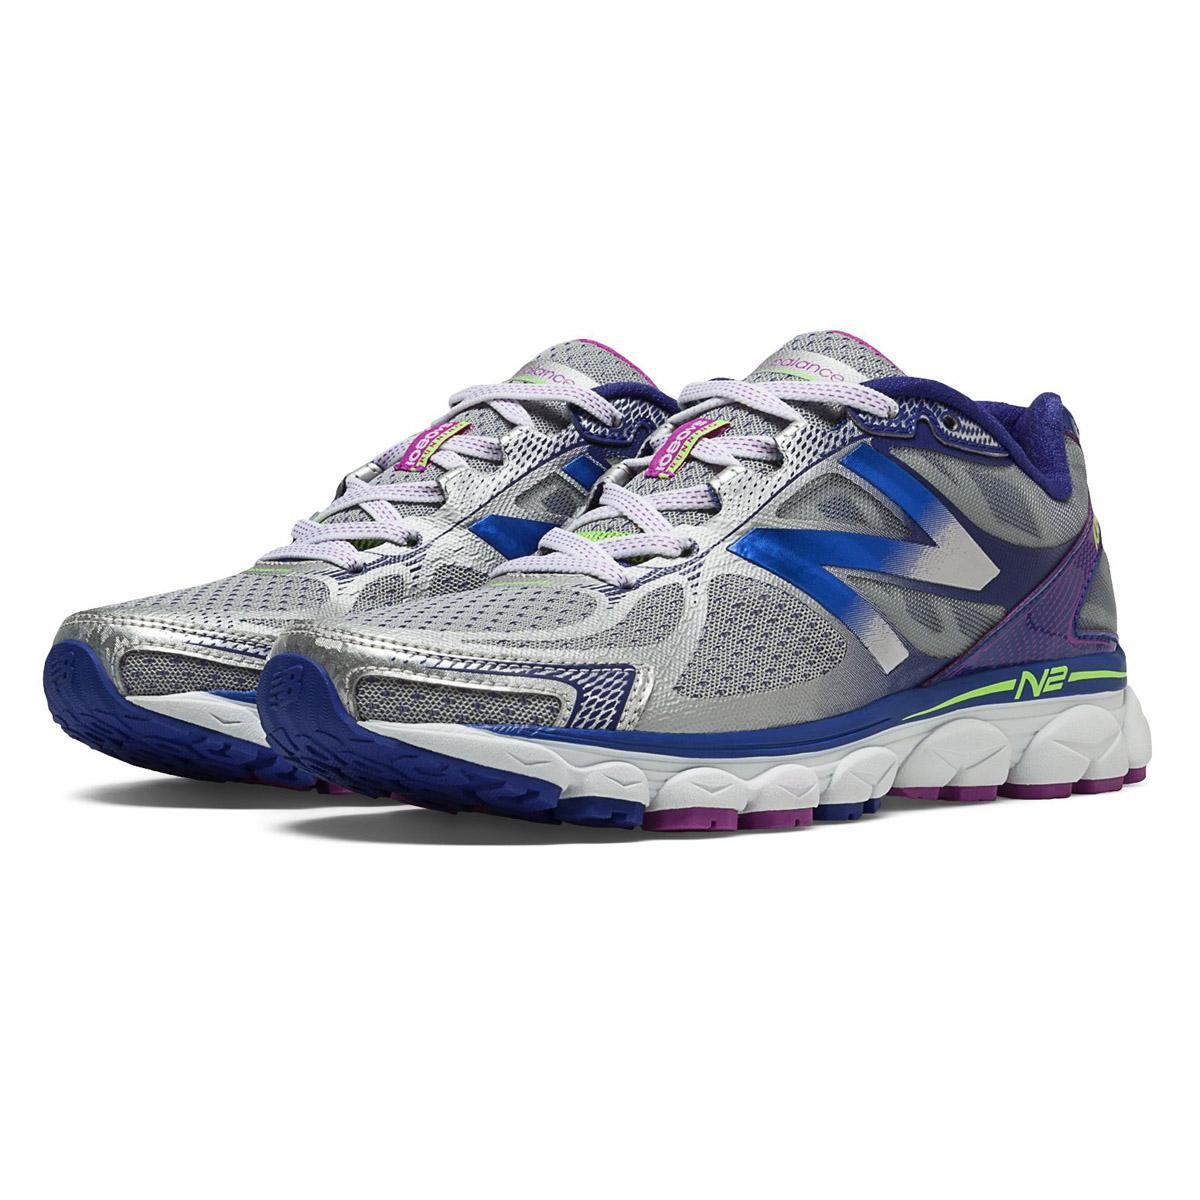 New Balance W1080v5 Womens B Running Shoes Silver Purple Blue